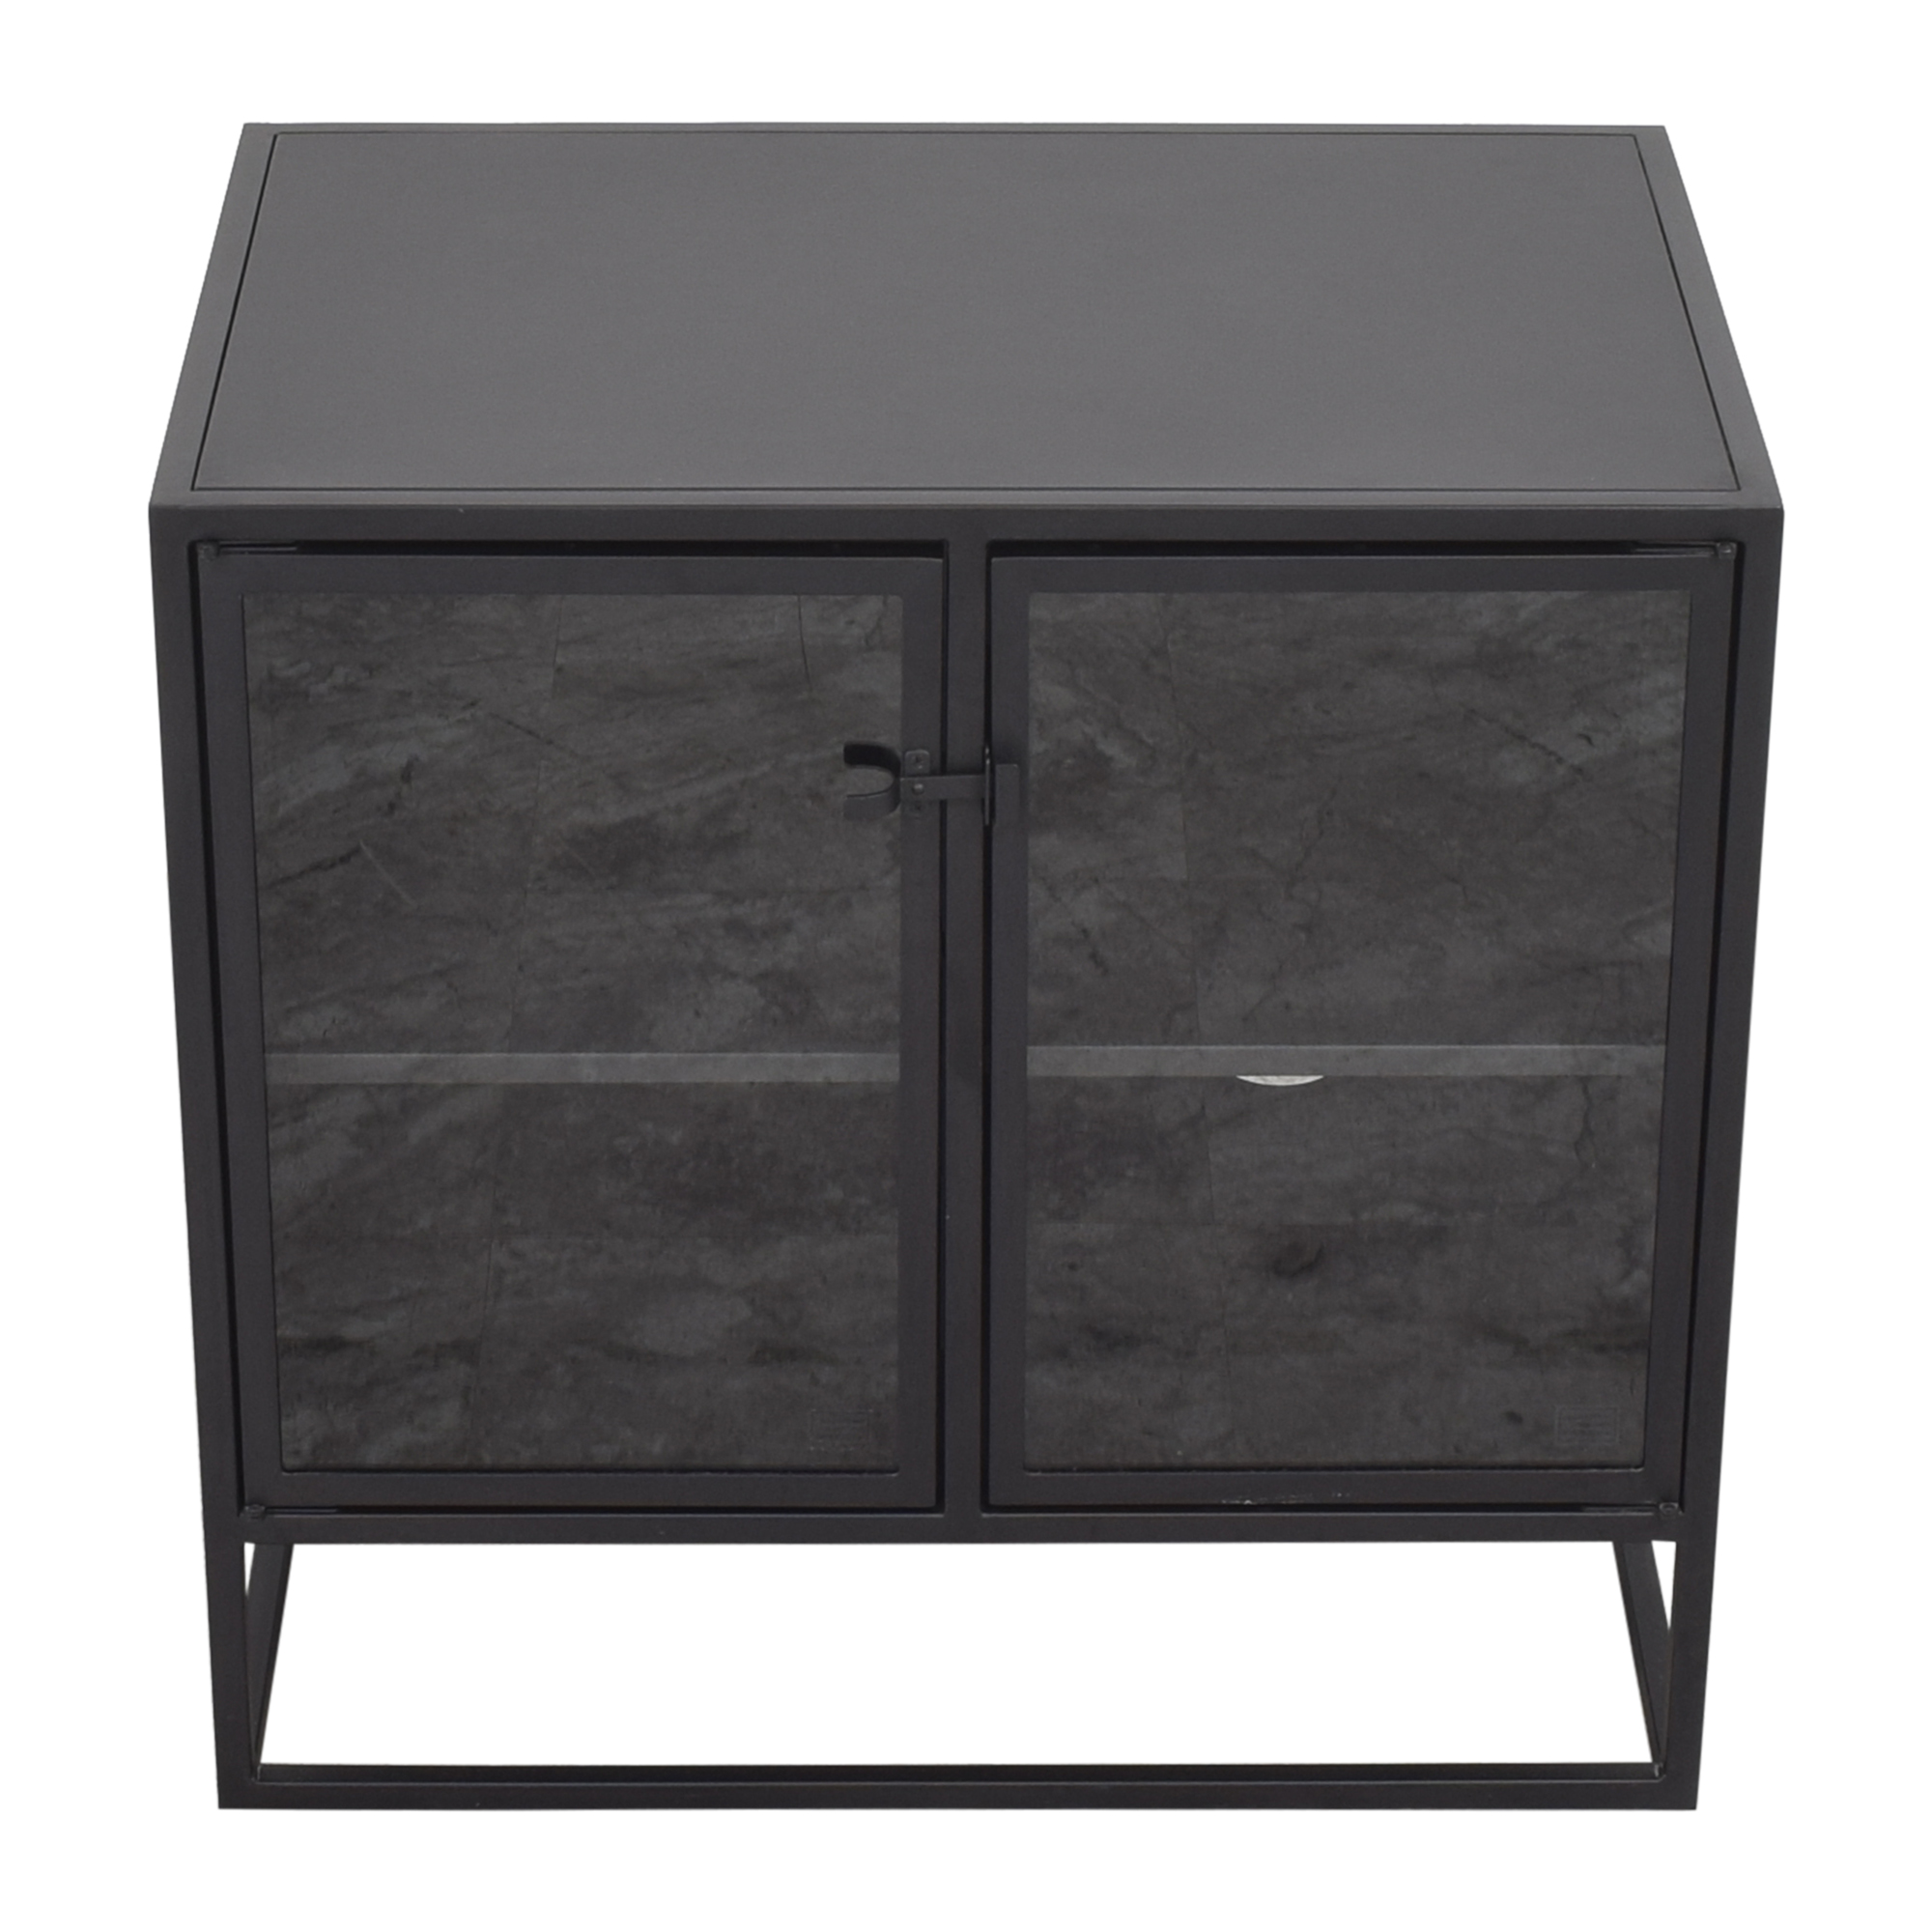 buy Crate & Barrel Casement Small Sideboard Crate & Barrel Cabinets & Sideboards